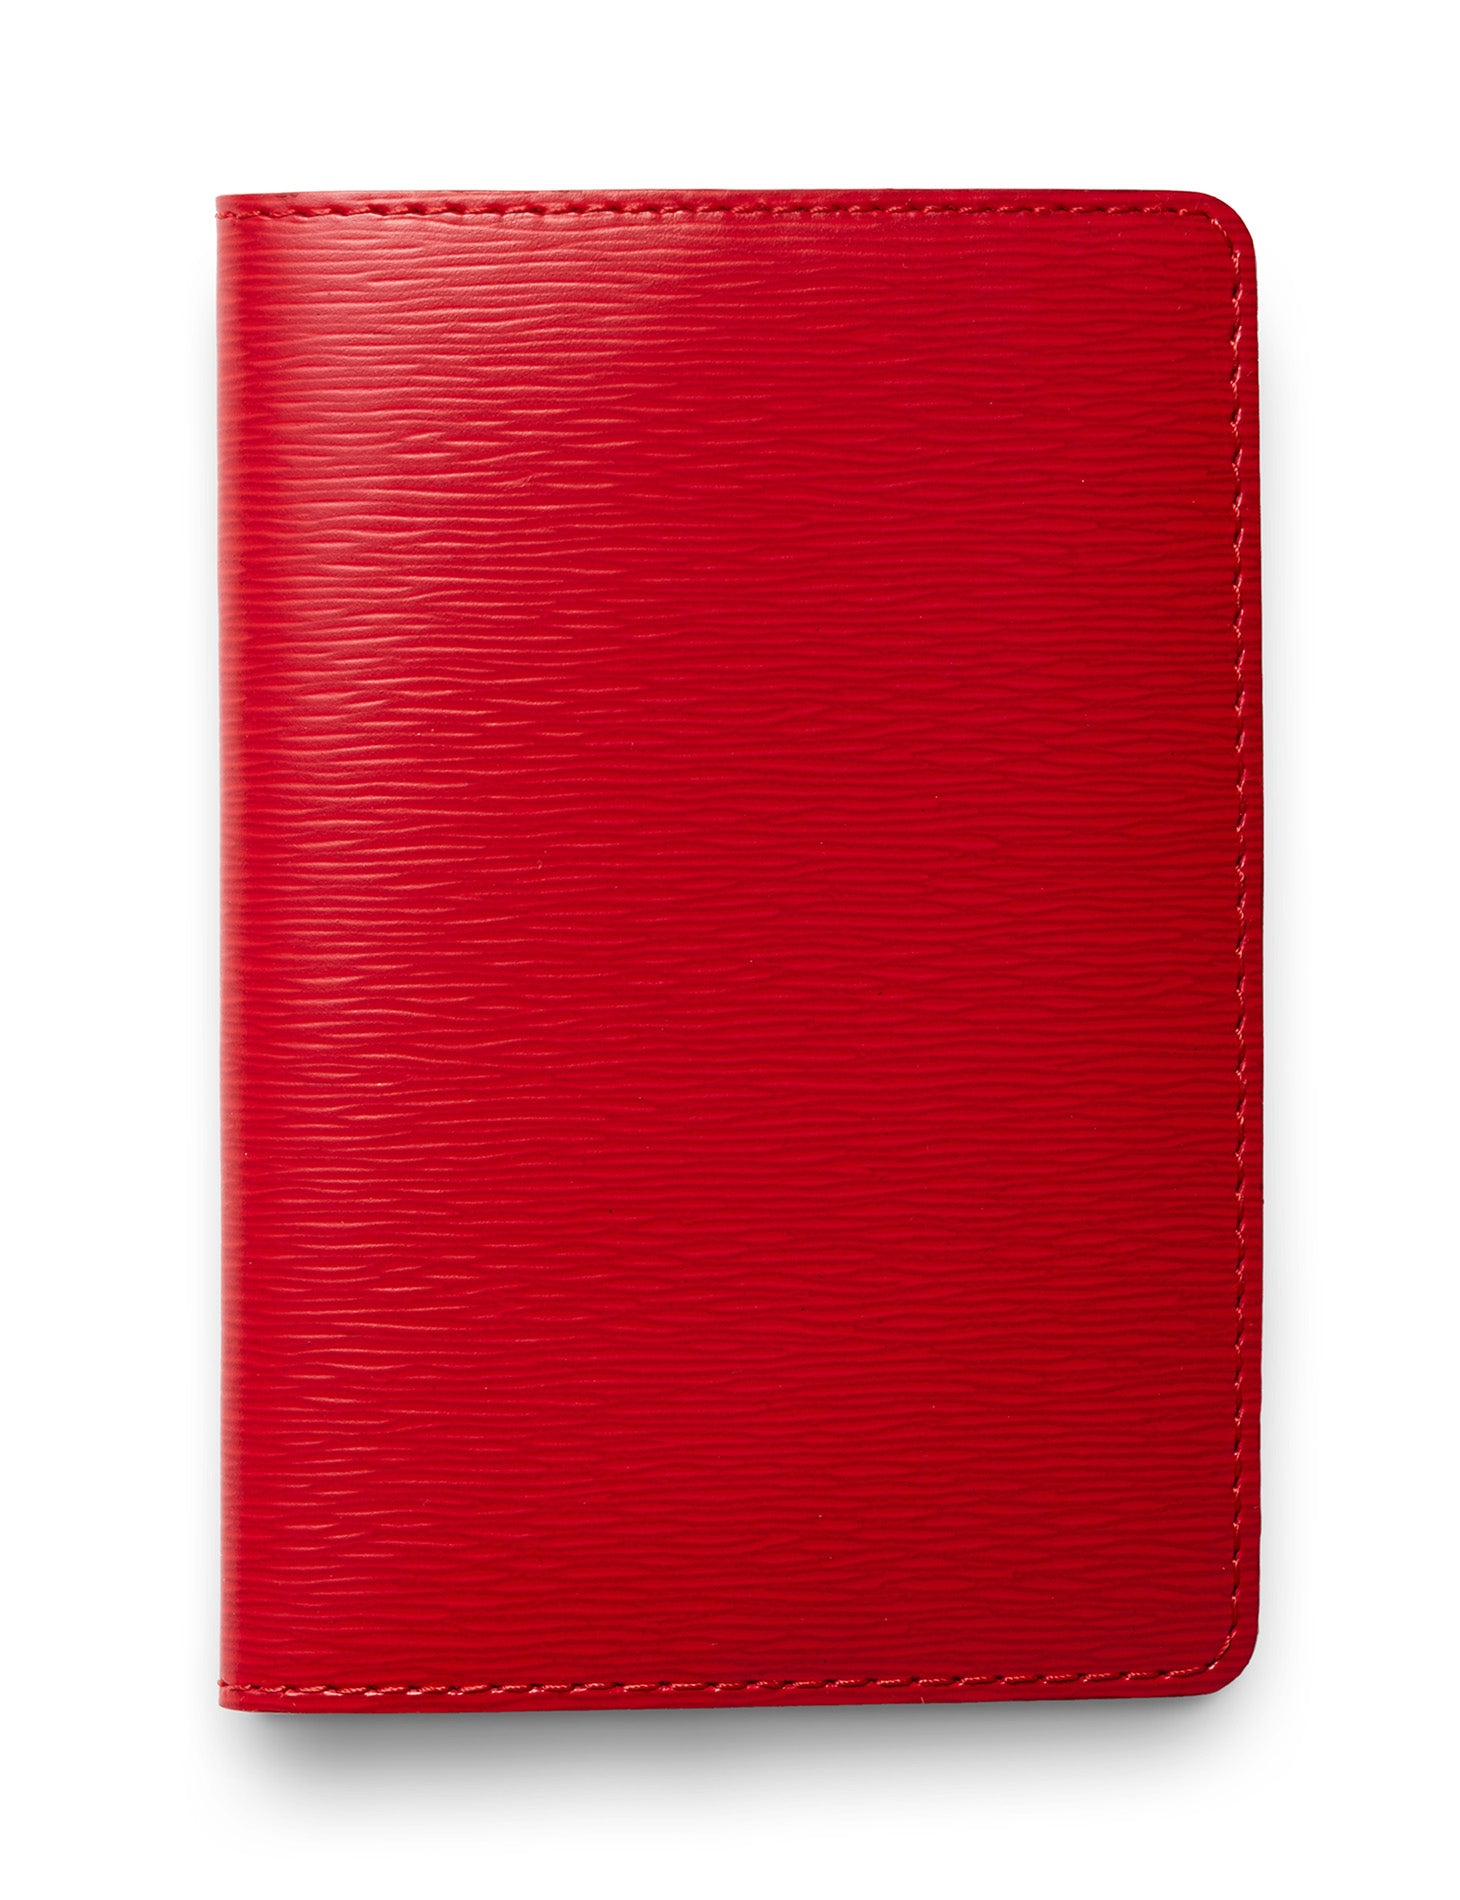 David August Luxury Epi Leather Passport Holder in Red